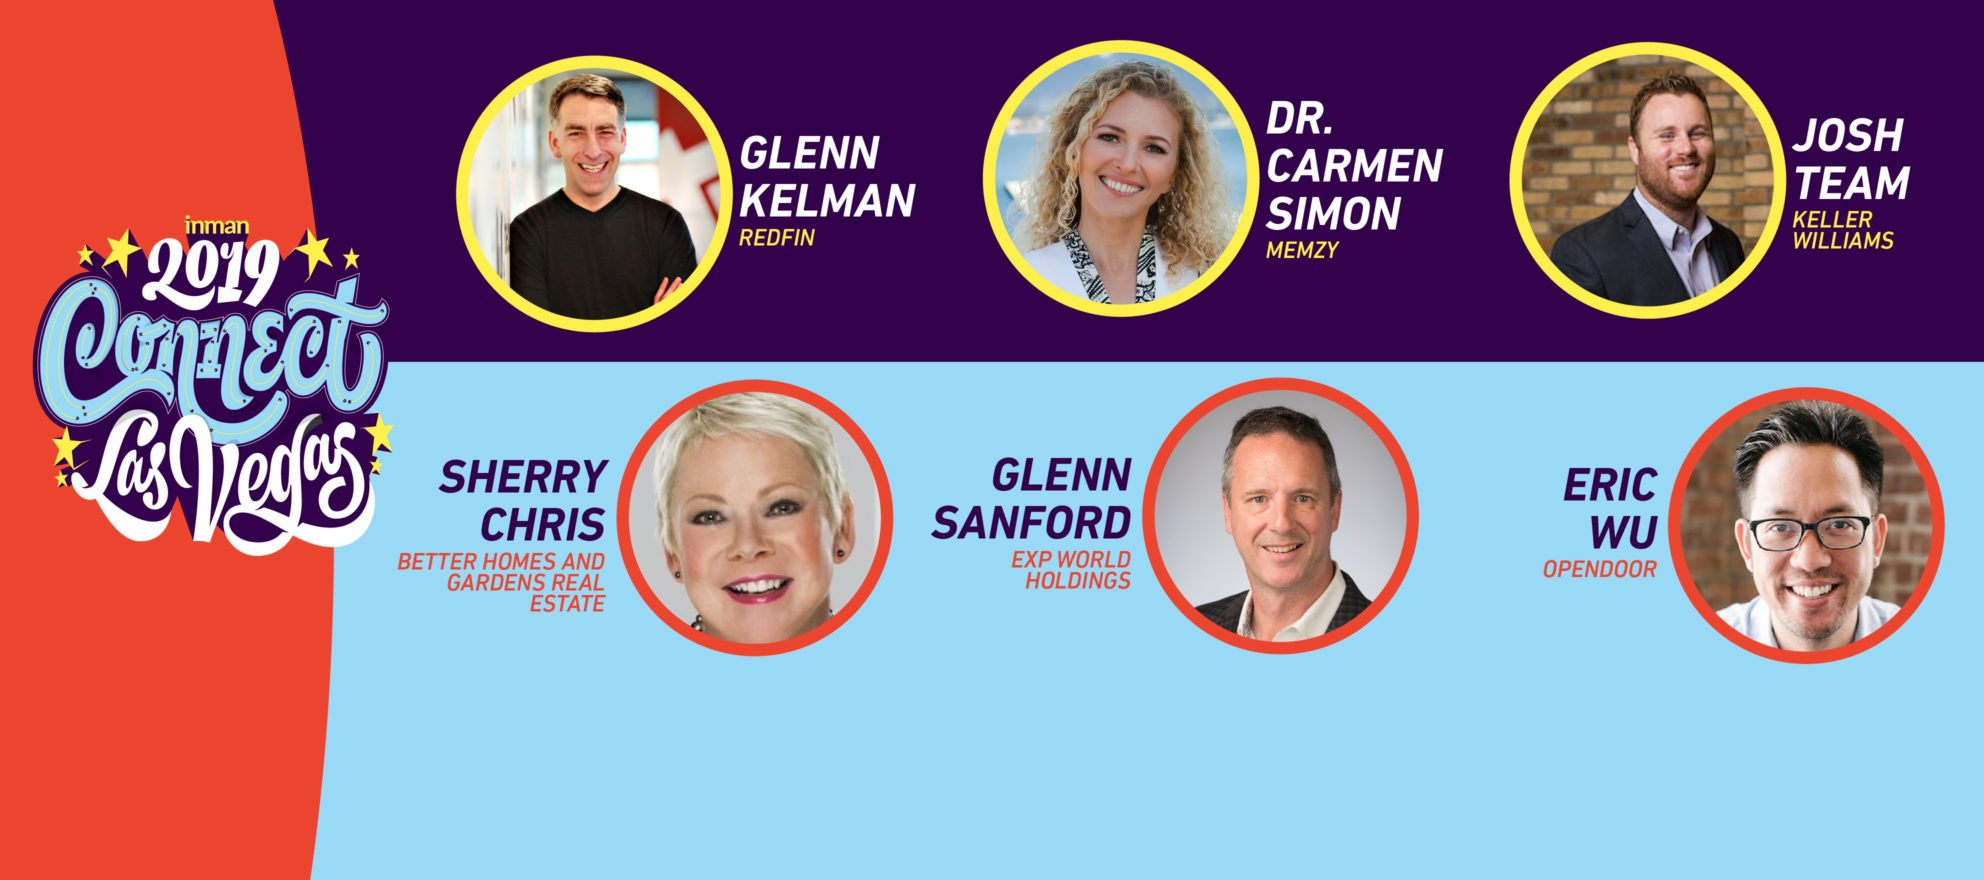 Announcing the first round of speakers for Inman Connect Las Vegas 2019